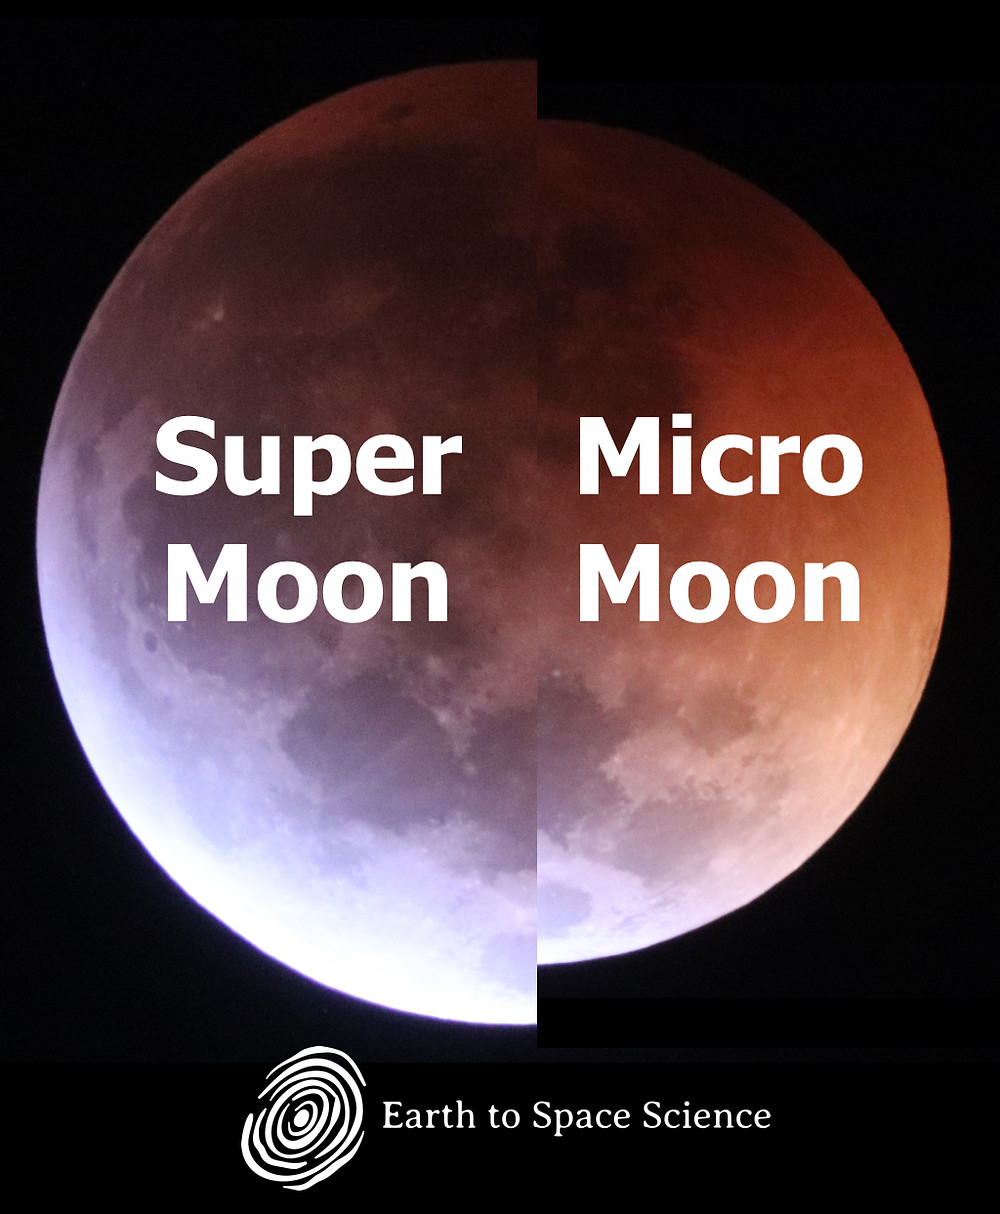 Moon size comparison between super moon and micro moon.